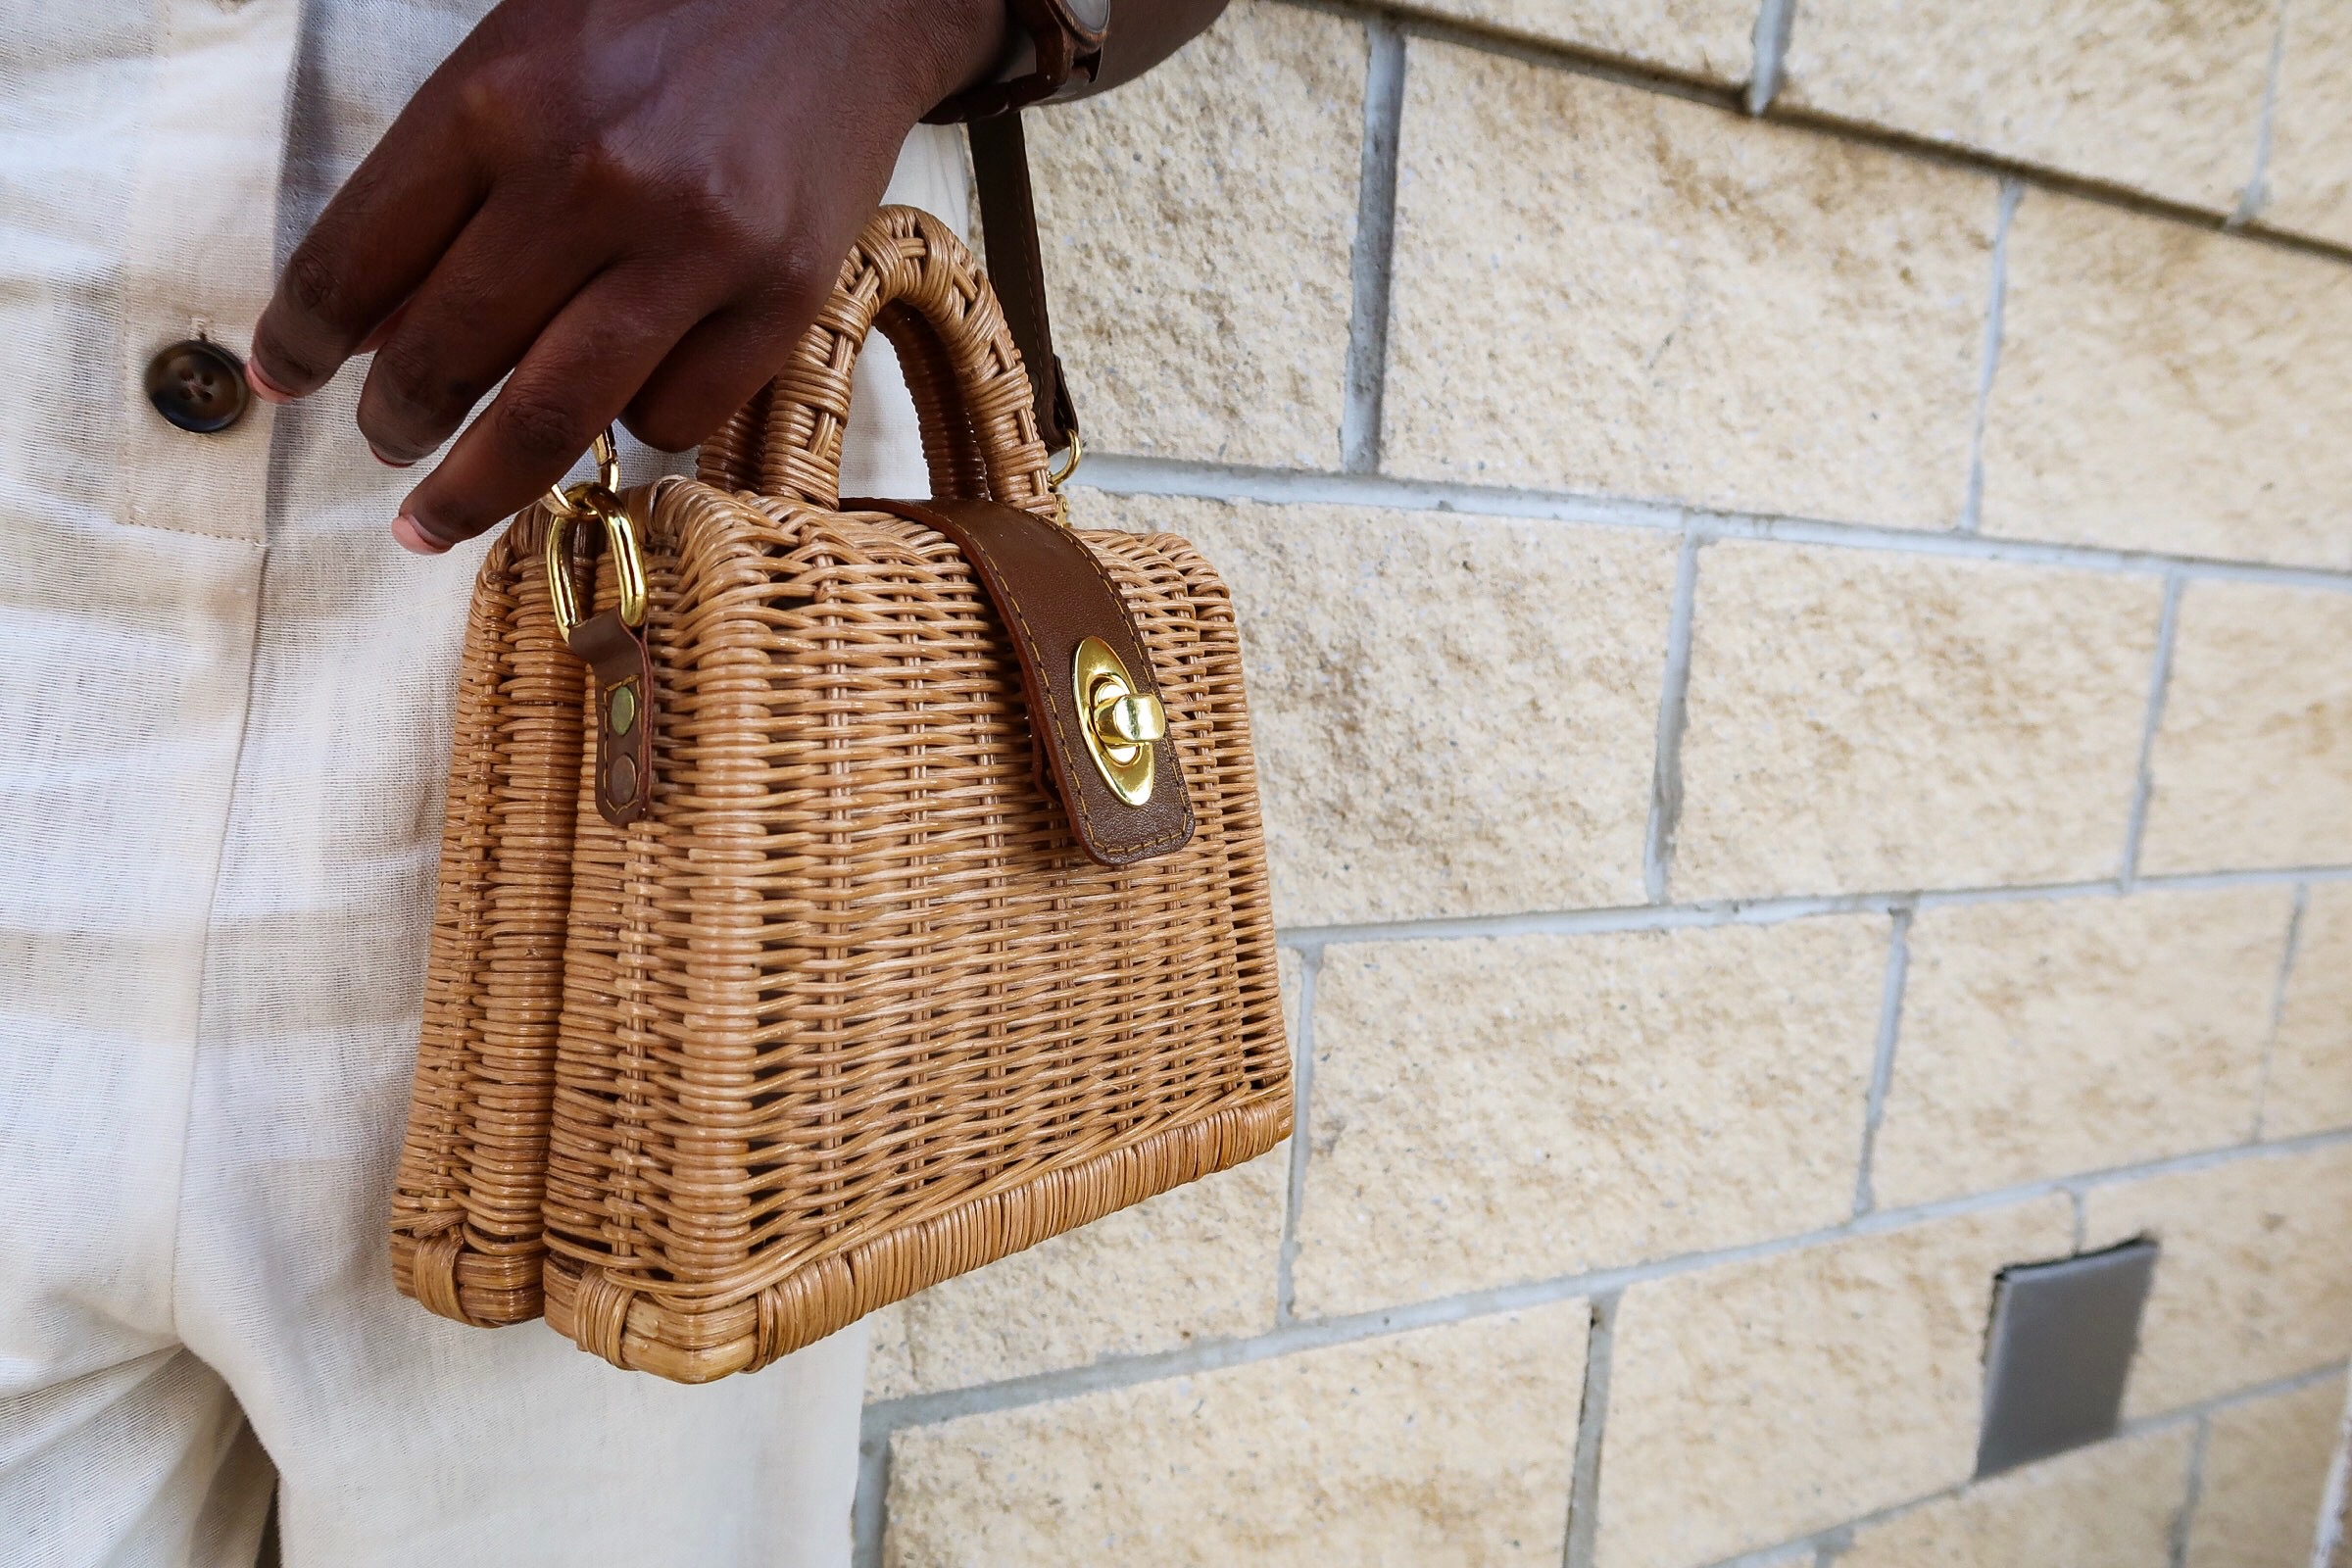 Shop Everina's basket bag. So chic!